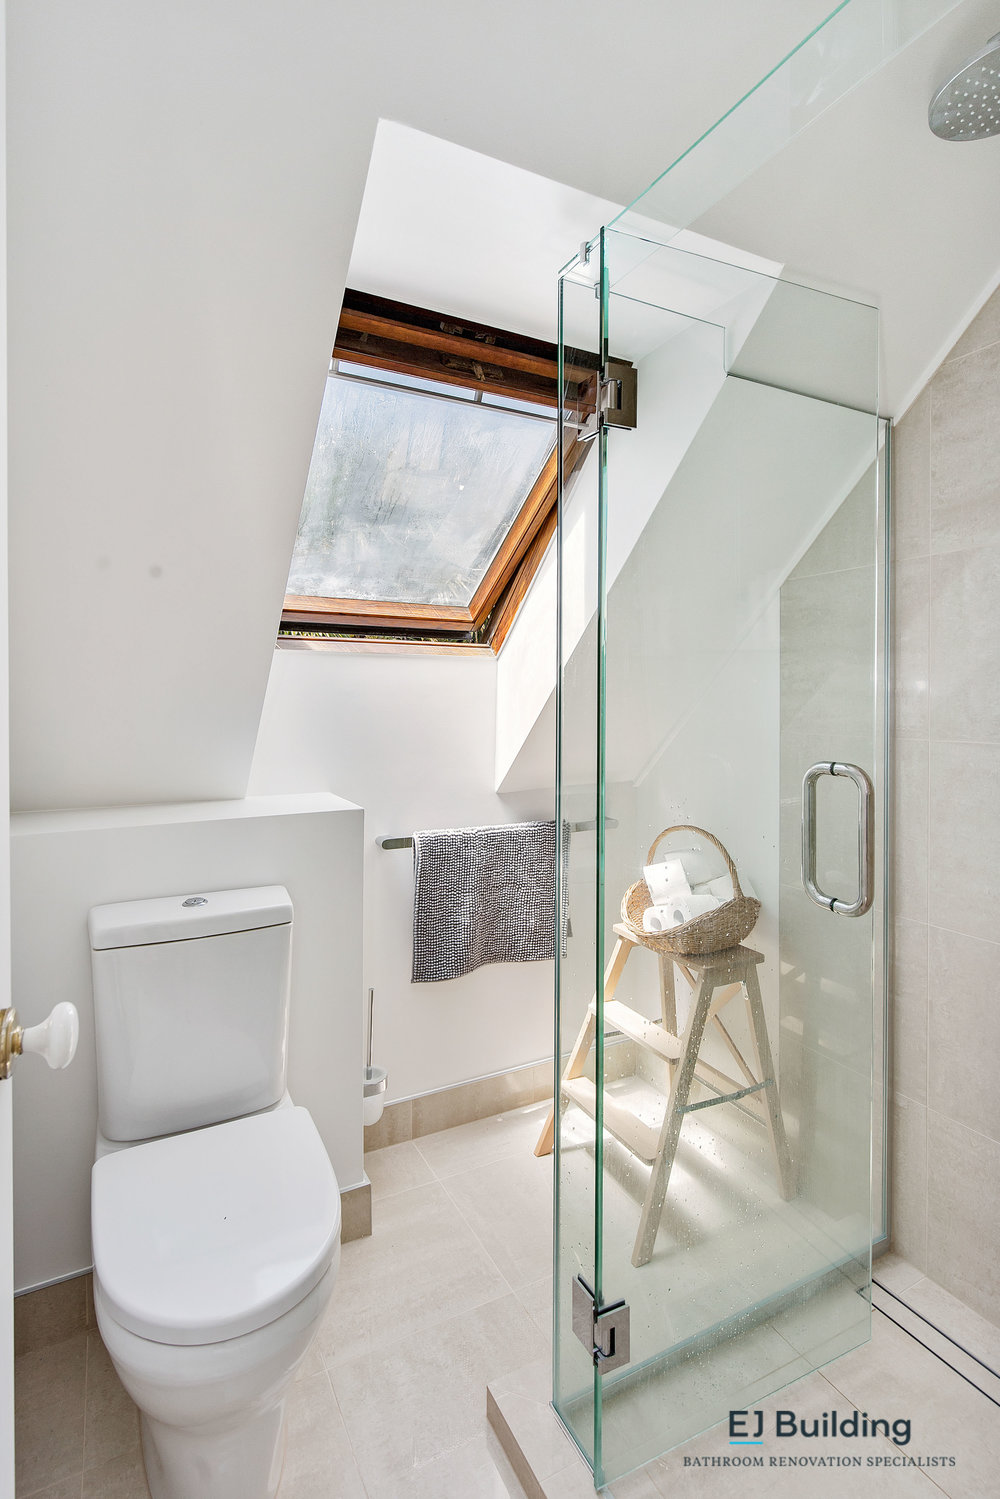 Auckland bathroom renovation company. Full project management, with fixed quotes.